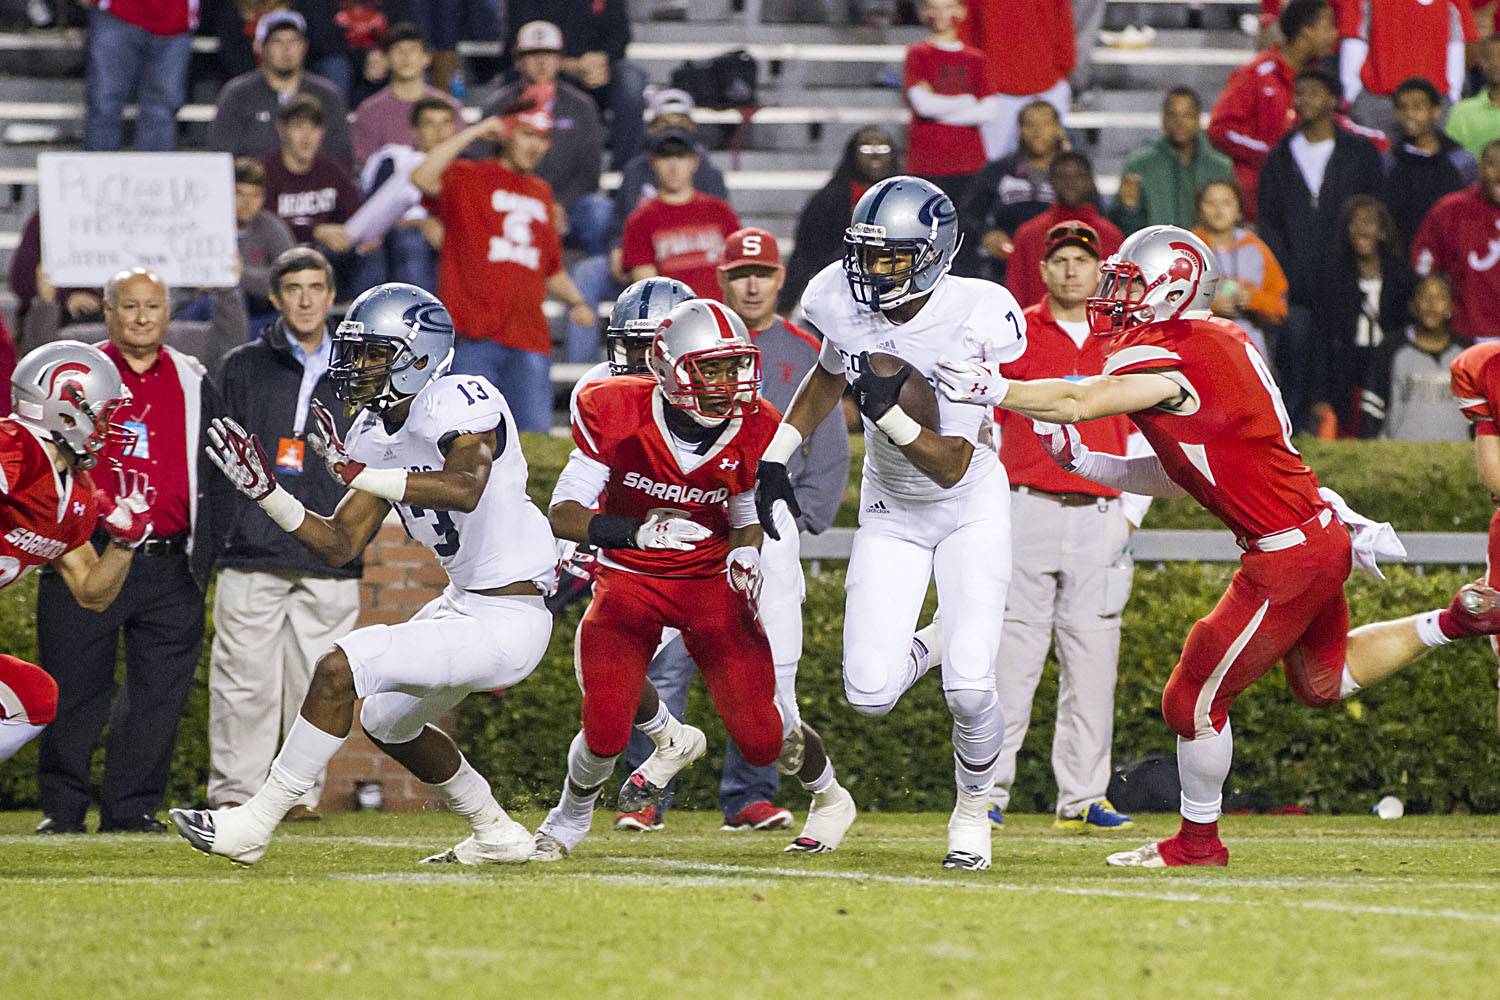 Clay-Chalkville sets spring gamedate, opponent